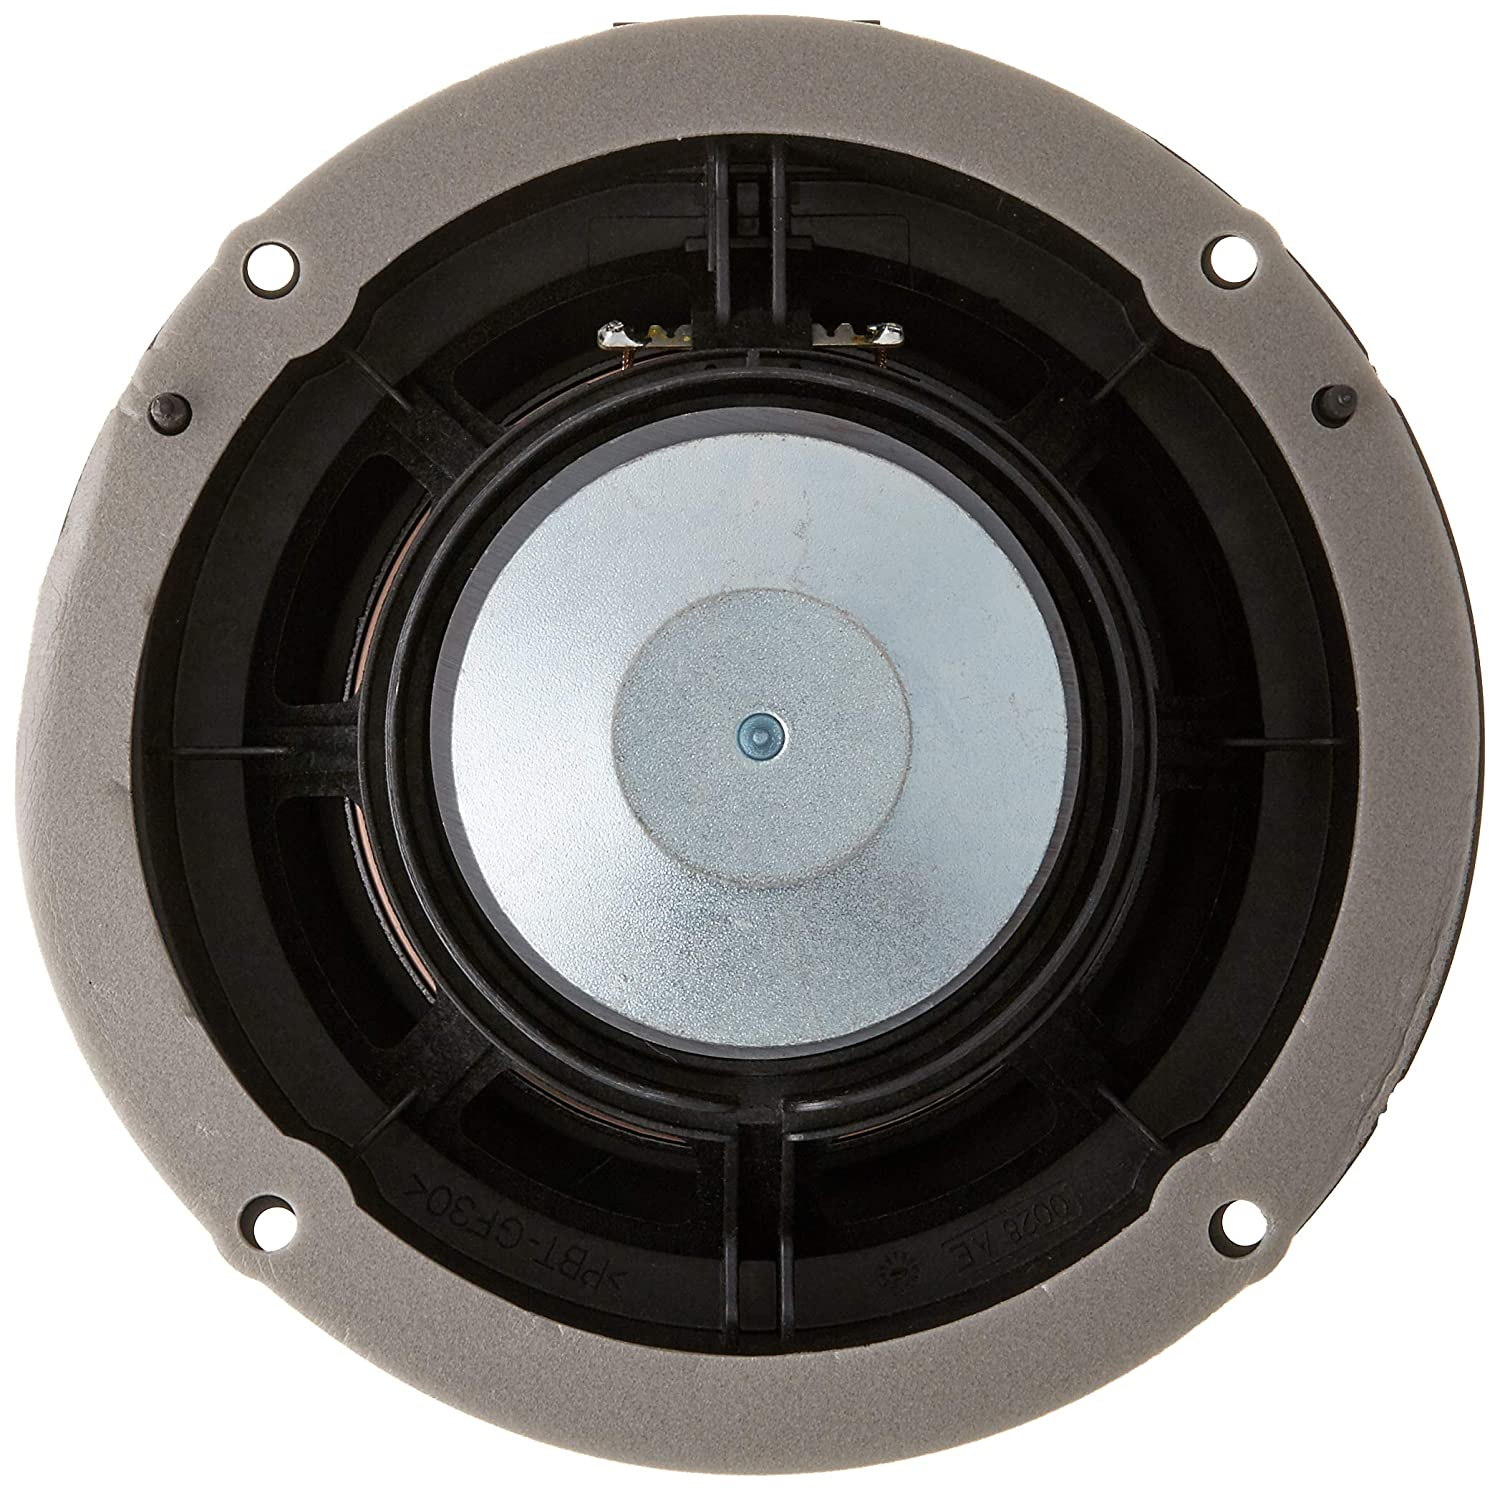 HYUNDAI Genuine 96330-3L300 Door Speaker and Protector Assembly Front